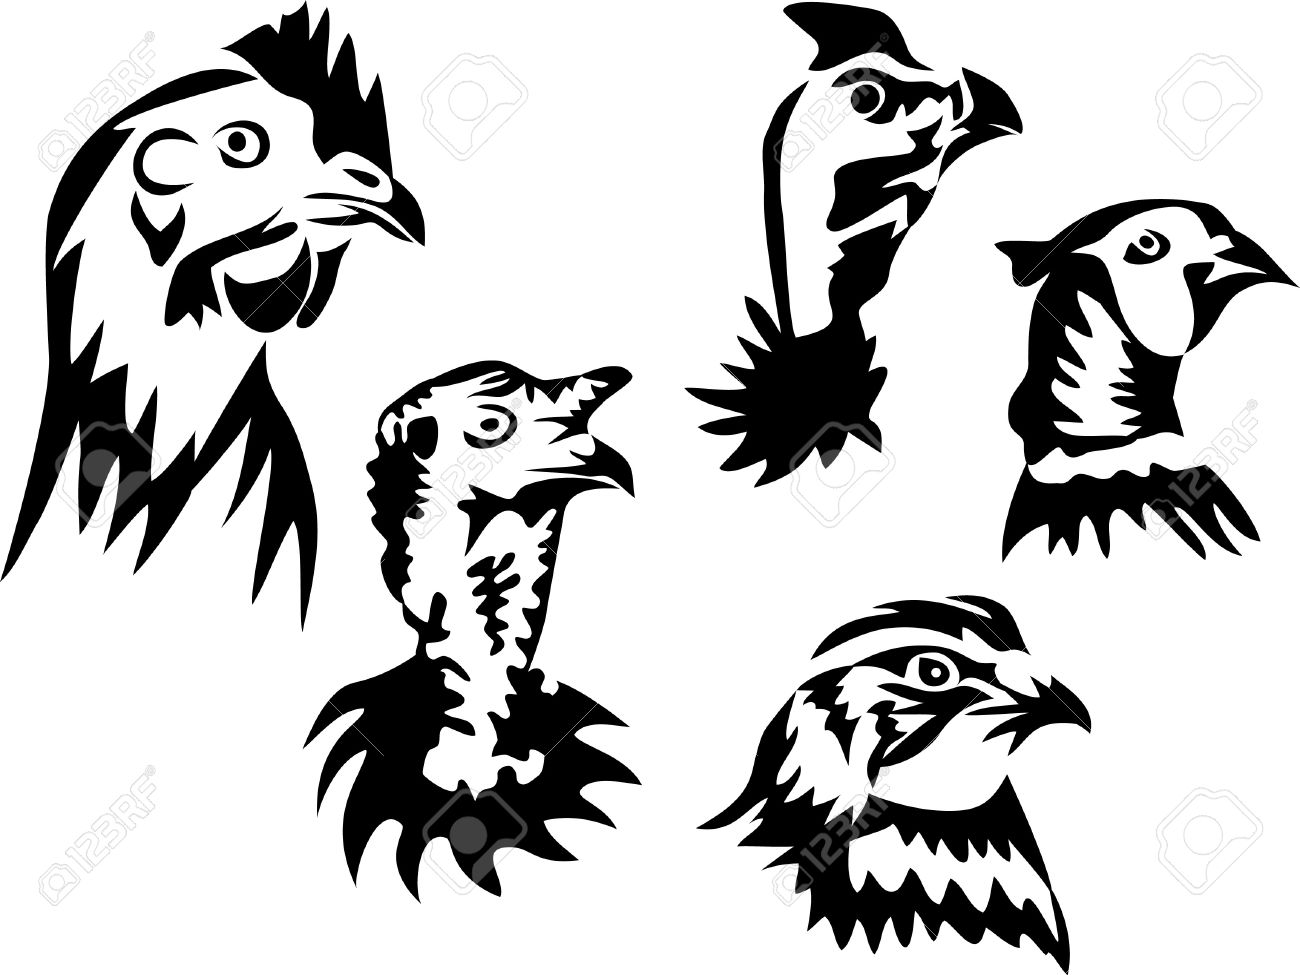 Gallinaceous Poultry.